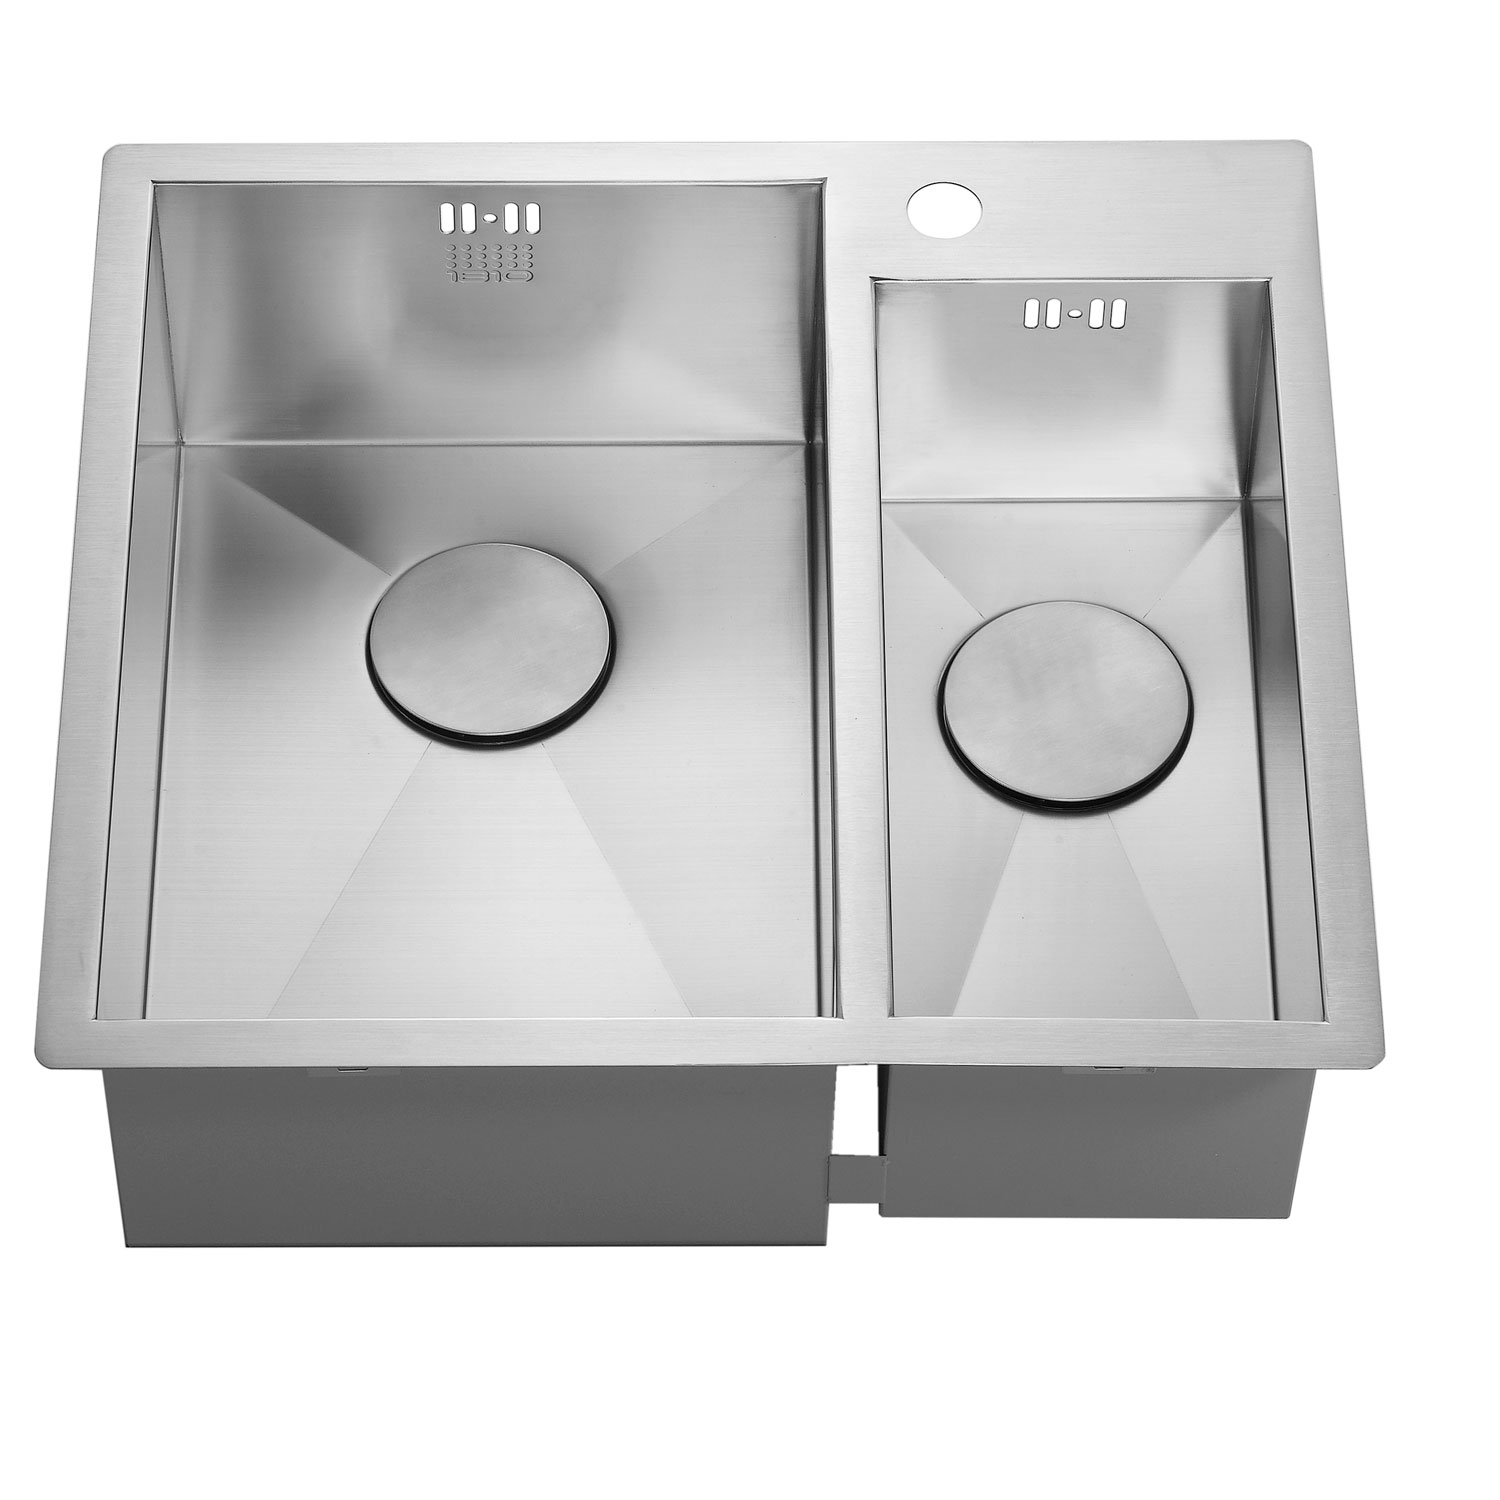 The 1810 Company Zenduo 310/180 I-F 1.5 Bowl Kitchen Sink - Left Hand-1